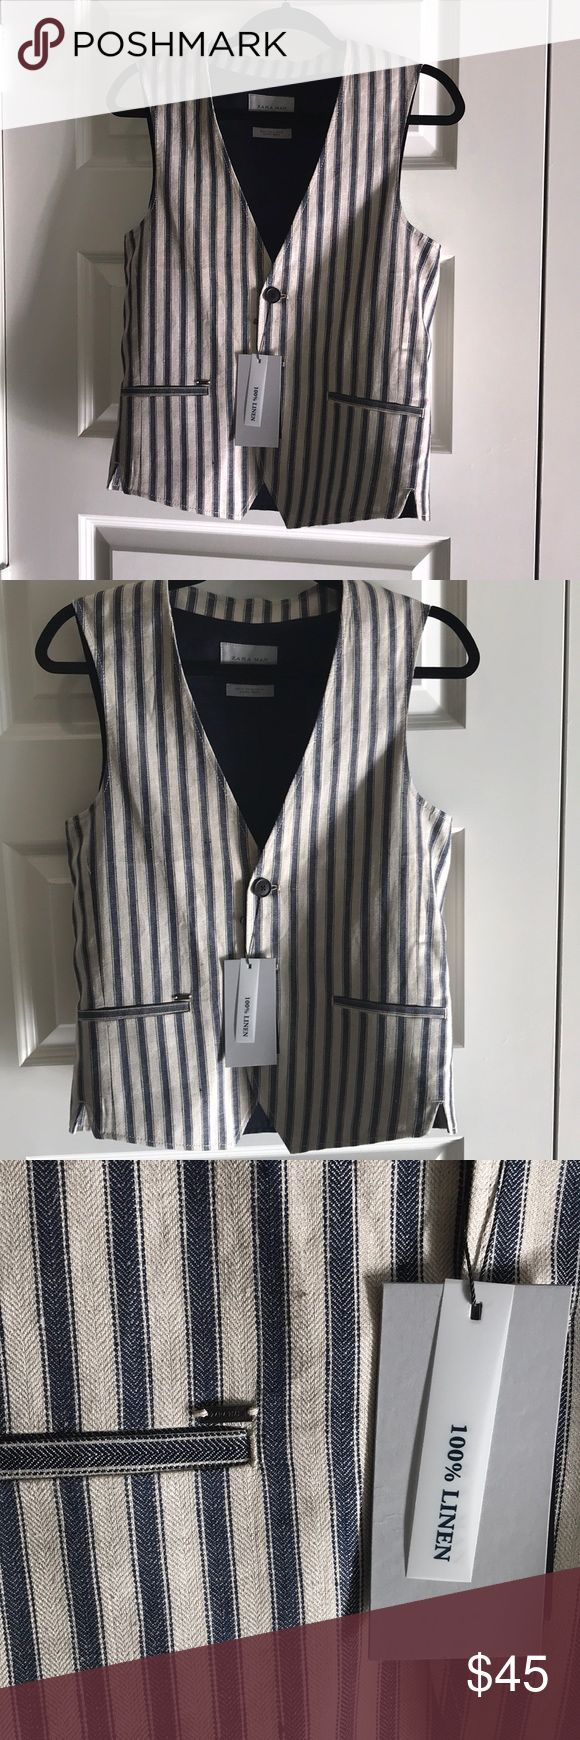 NWT Zara Man Vest NWT Zara Man Navy and cream linen pin stripe vest with three navy buttons and two pockets. Size Small Zara Suits & Blazers Vests